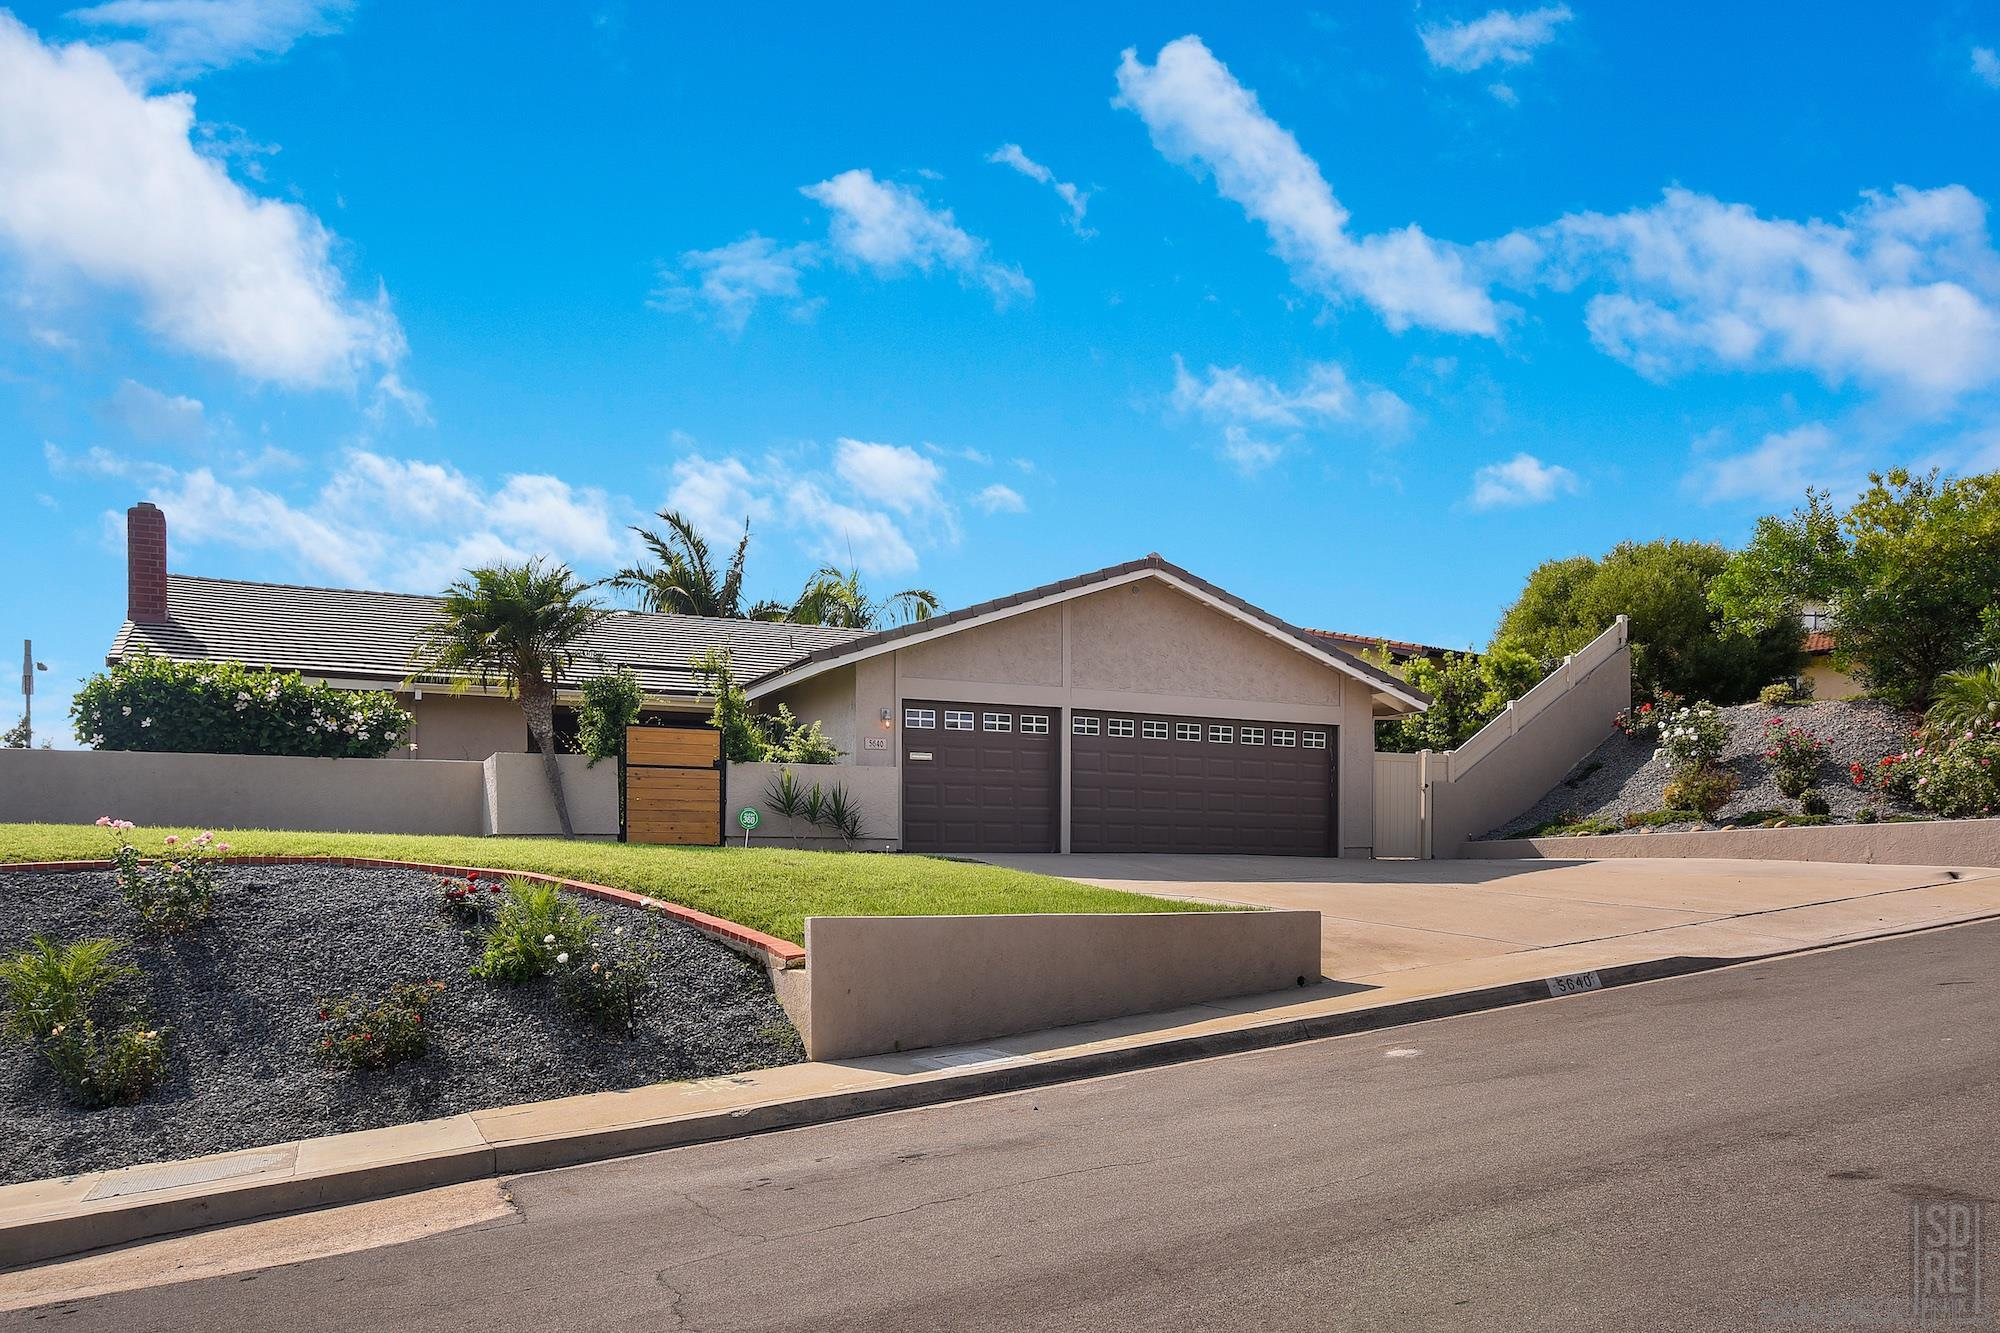 Four bedroom La Jolla Alta home with three car garage on an 11,800 square foot site. This home has been nicely updated / maintained. Some of the newer items include; roof, kitchen, baths and heating - cooling system